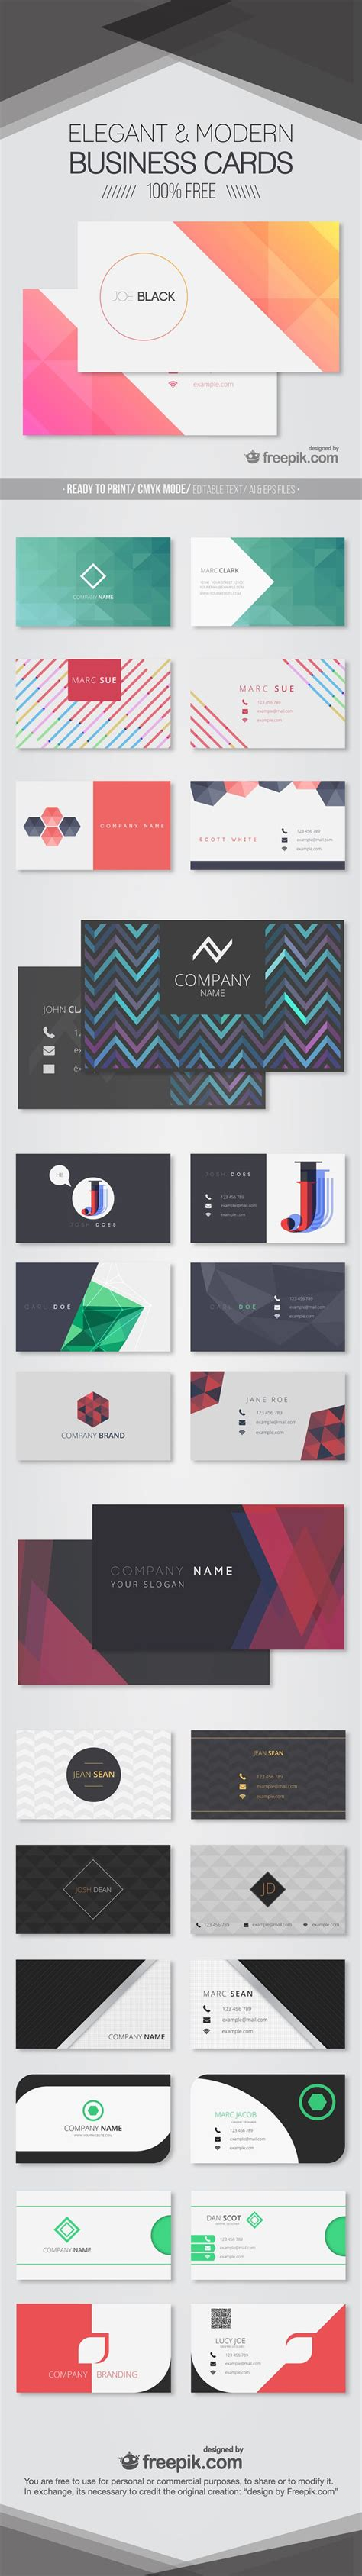 design cards template best 25 business cards ideas on